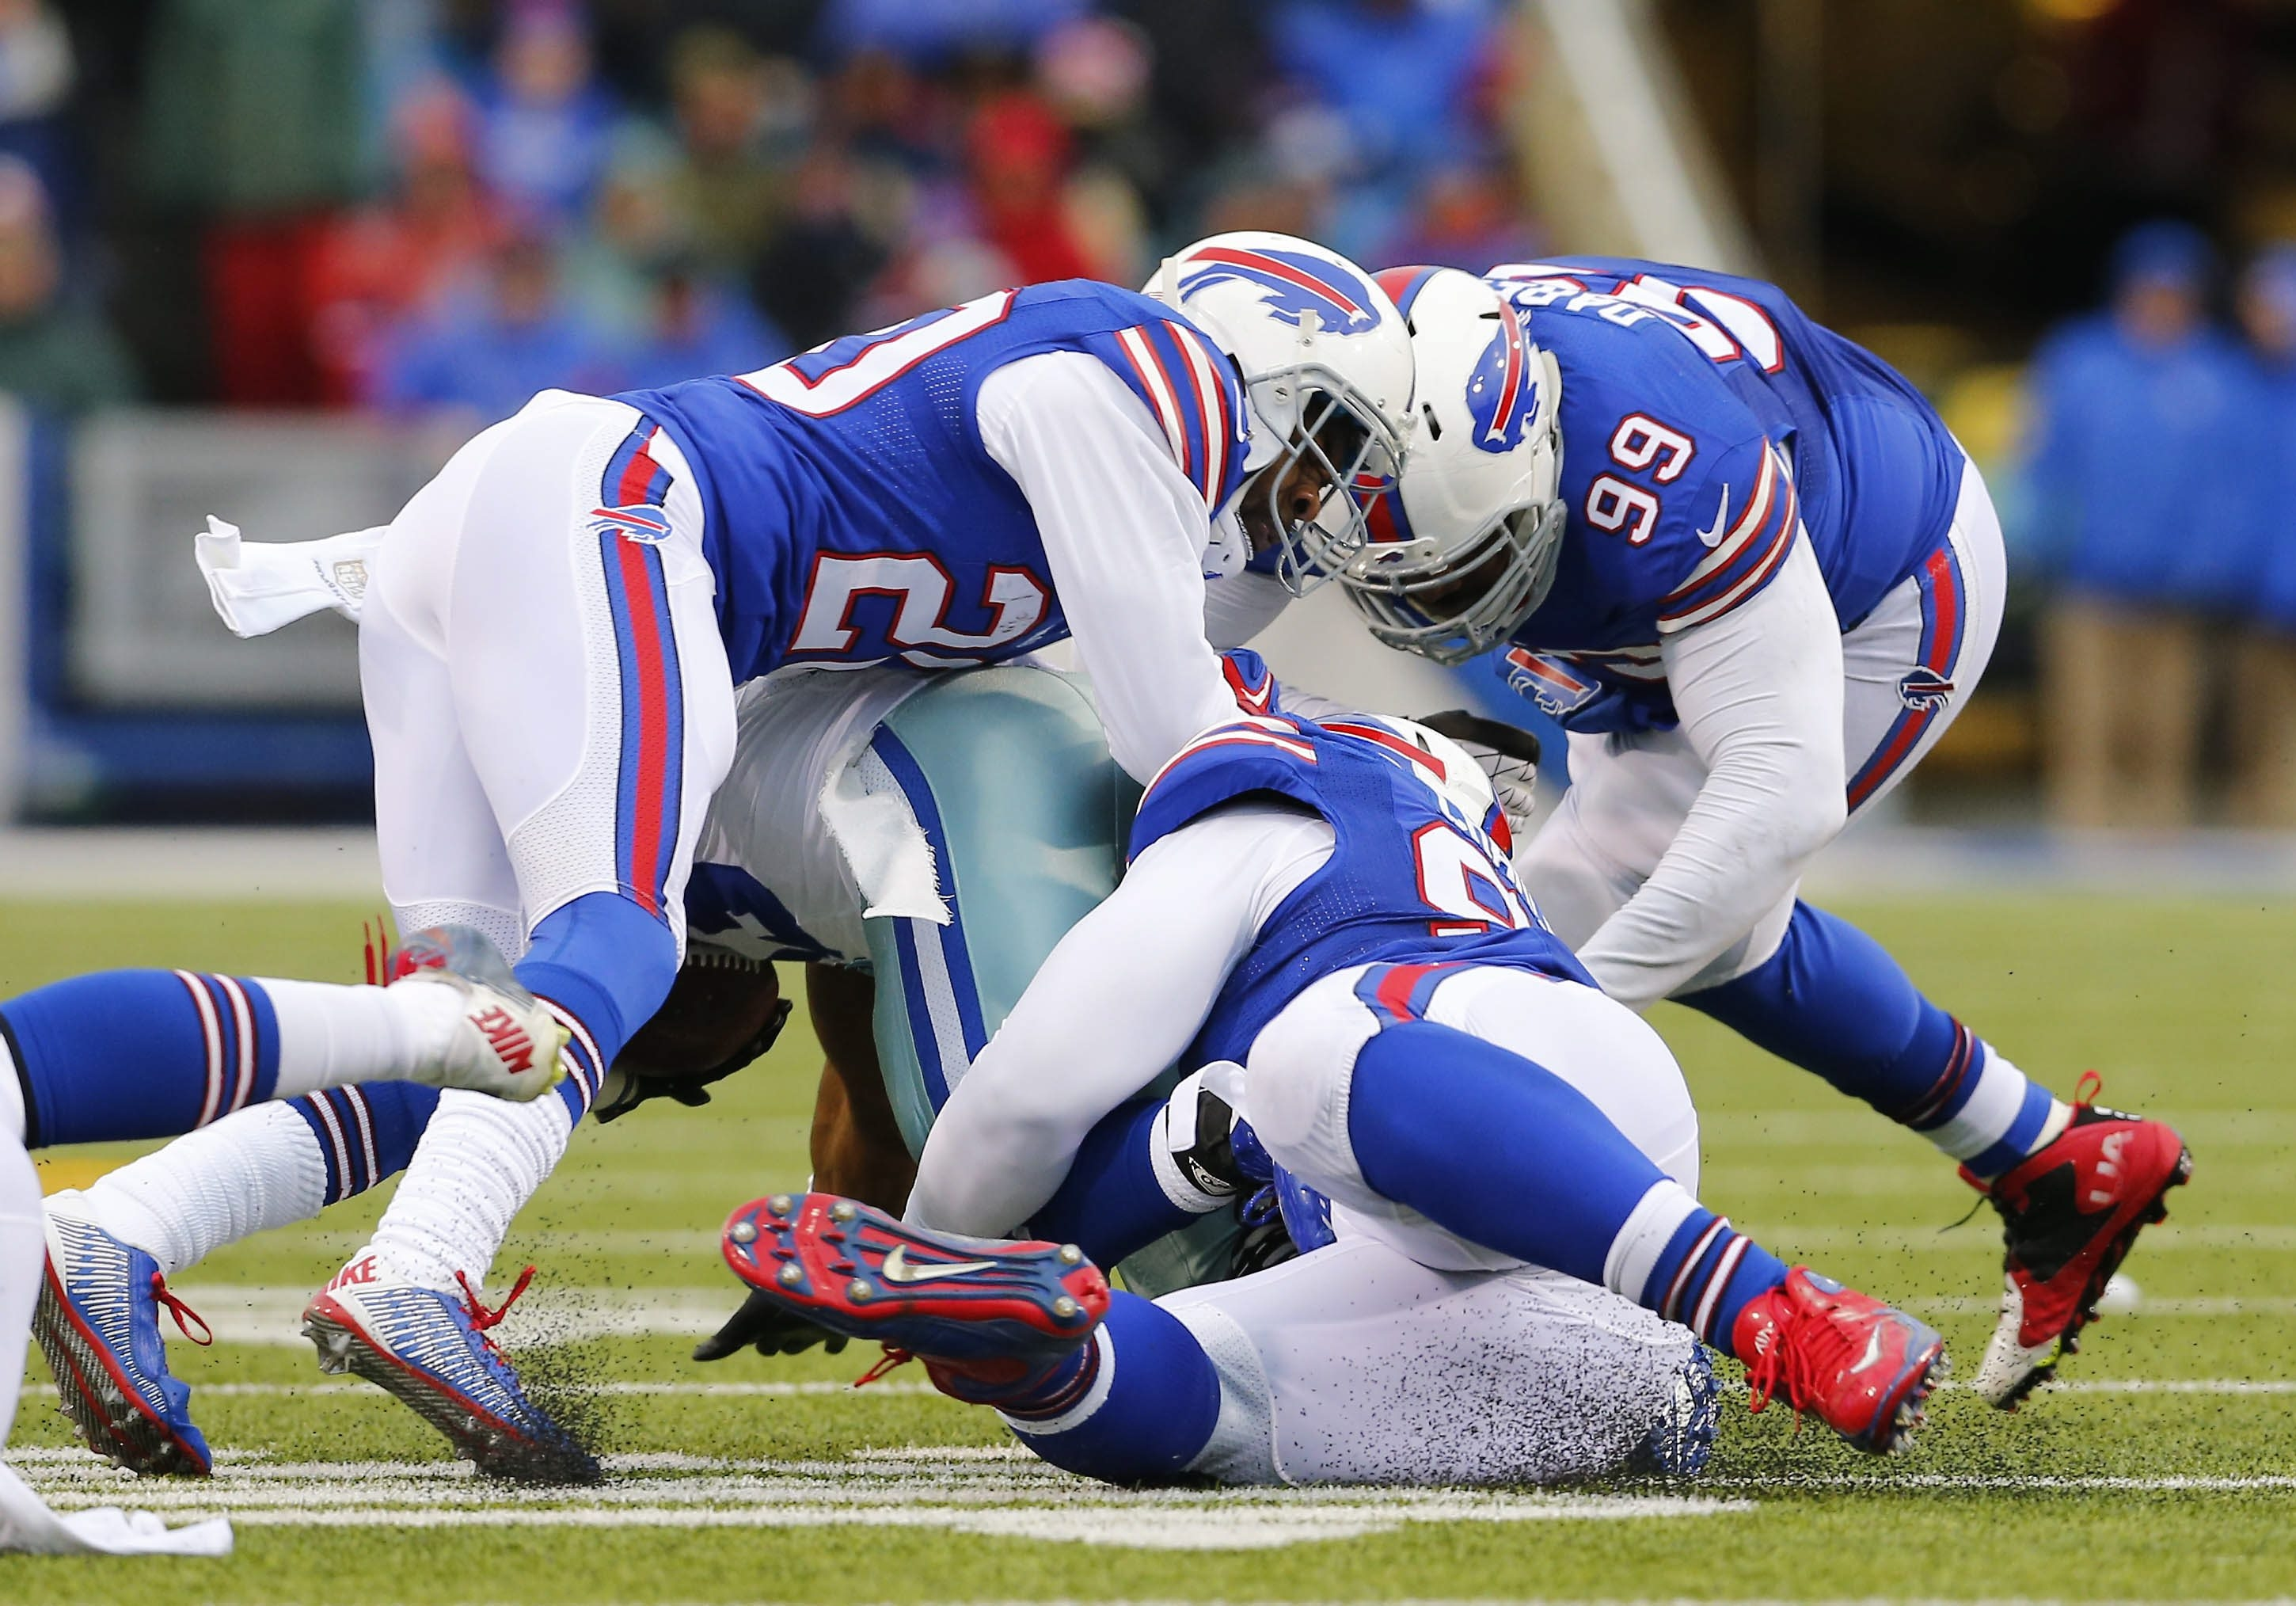 Marcell Dareus (99) is in on the tackle of the Cowboys' Robert Turbin in the second quarter. Dareus left with a neck injury and did not return.